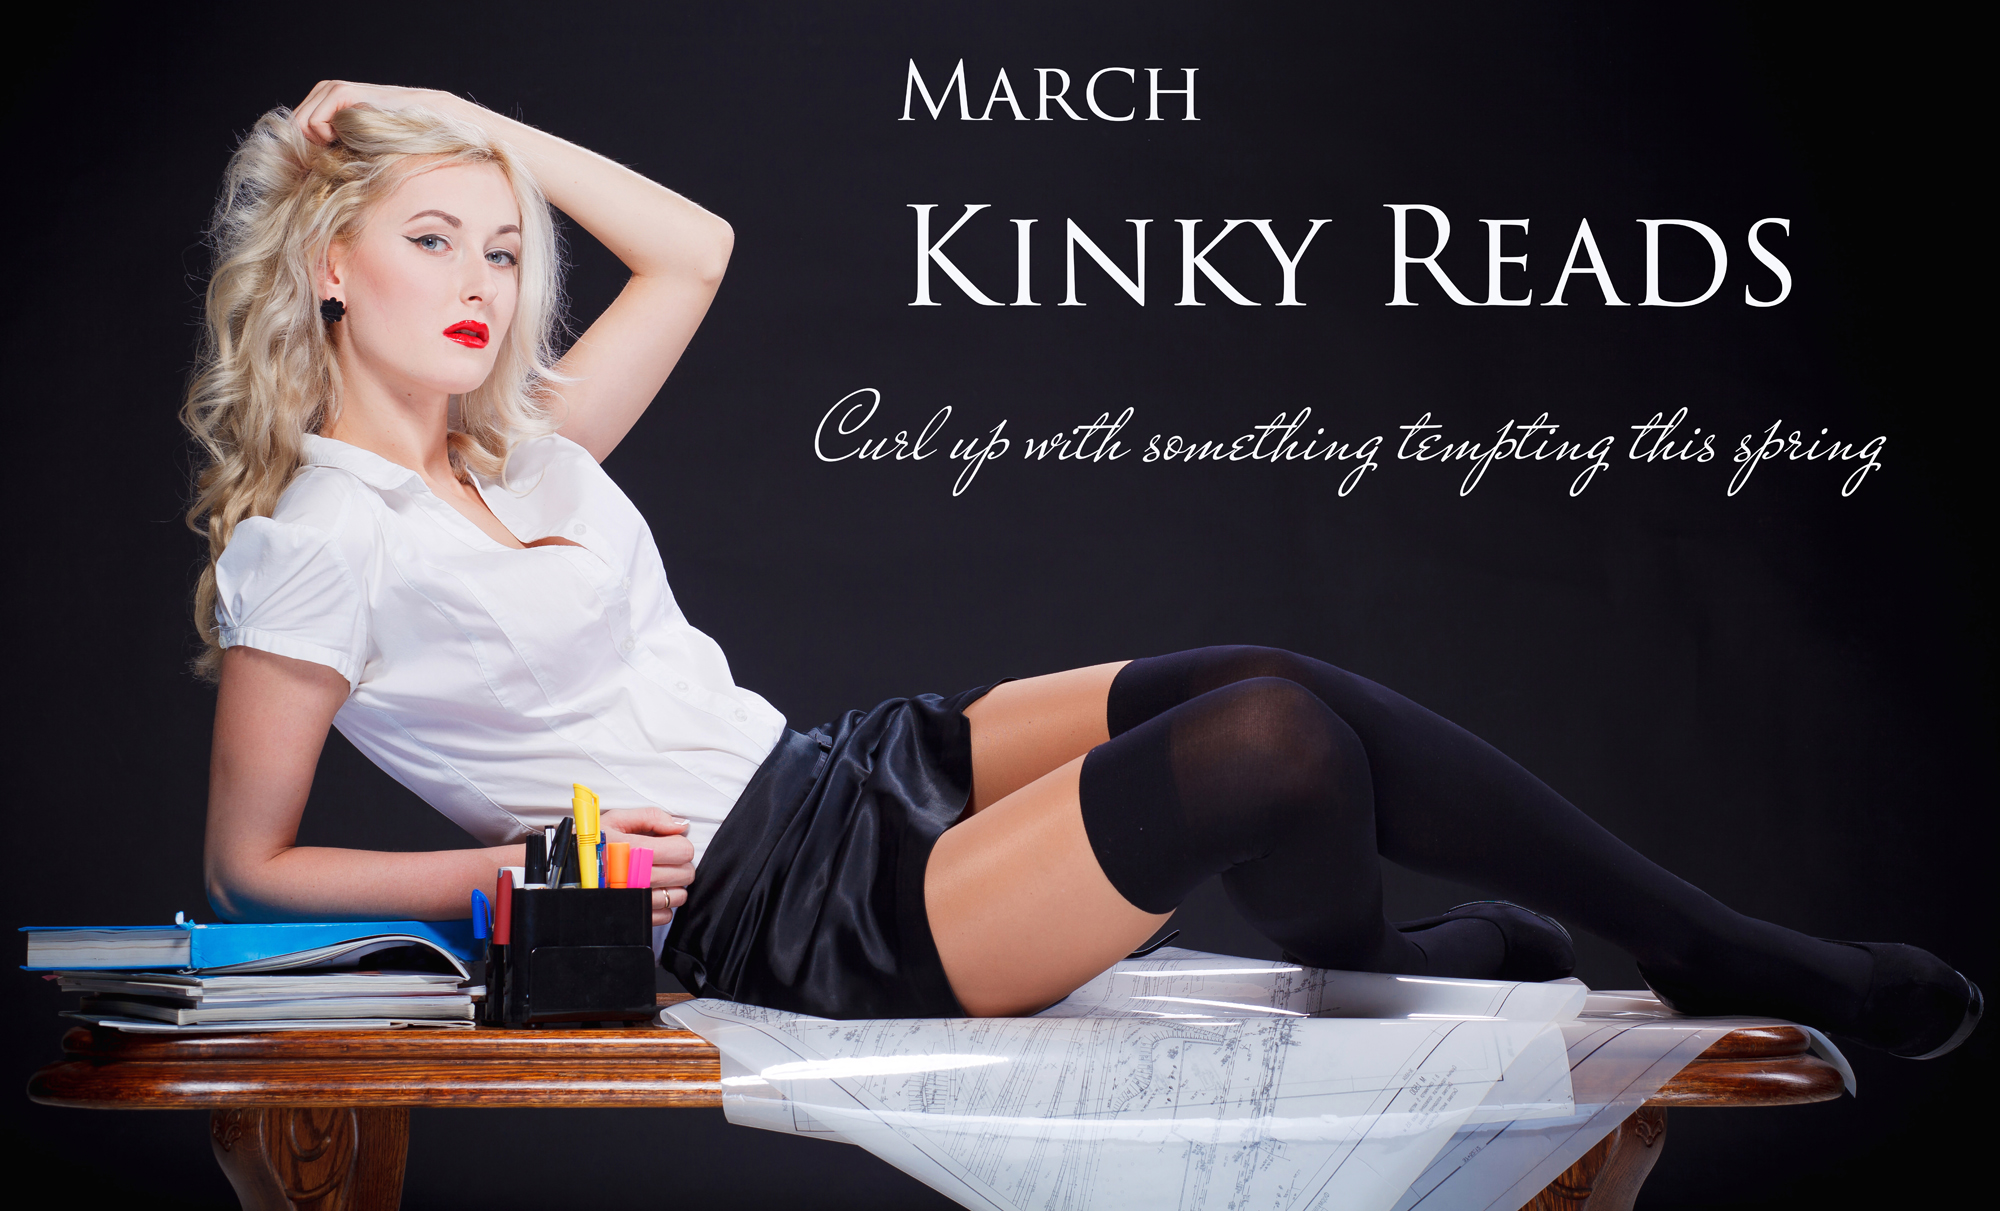 March-Kinky-Reads-Image (1)